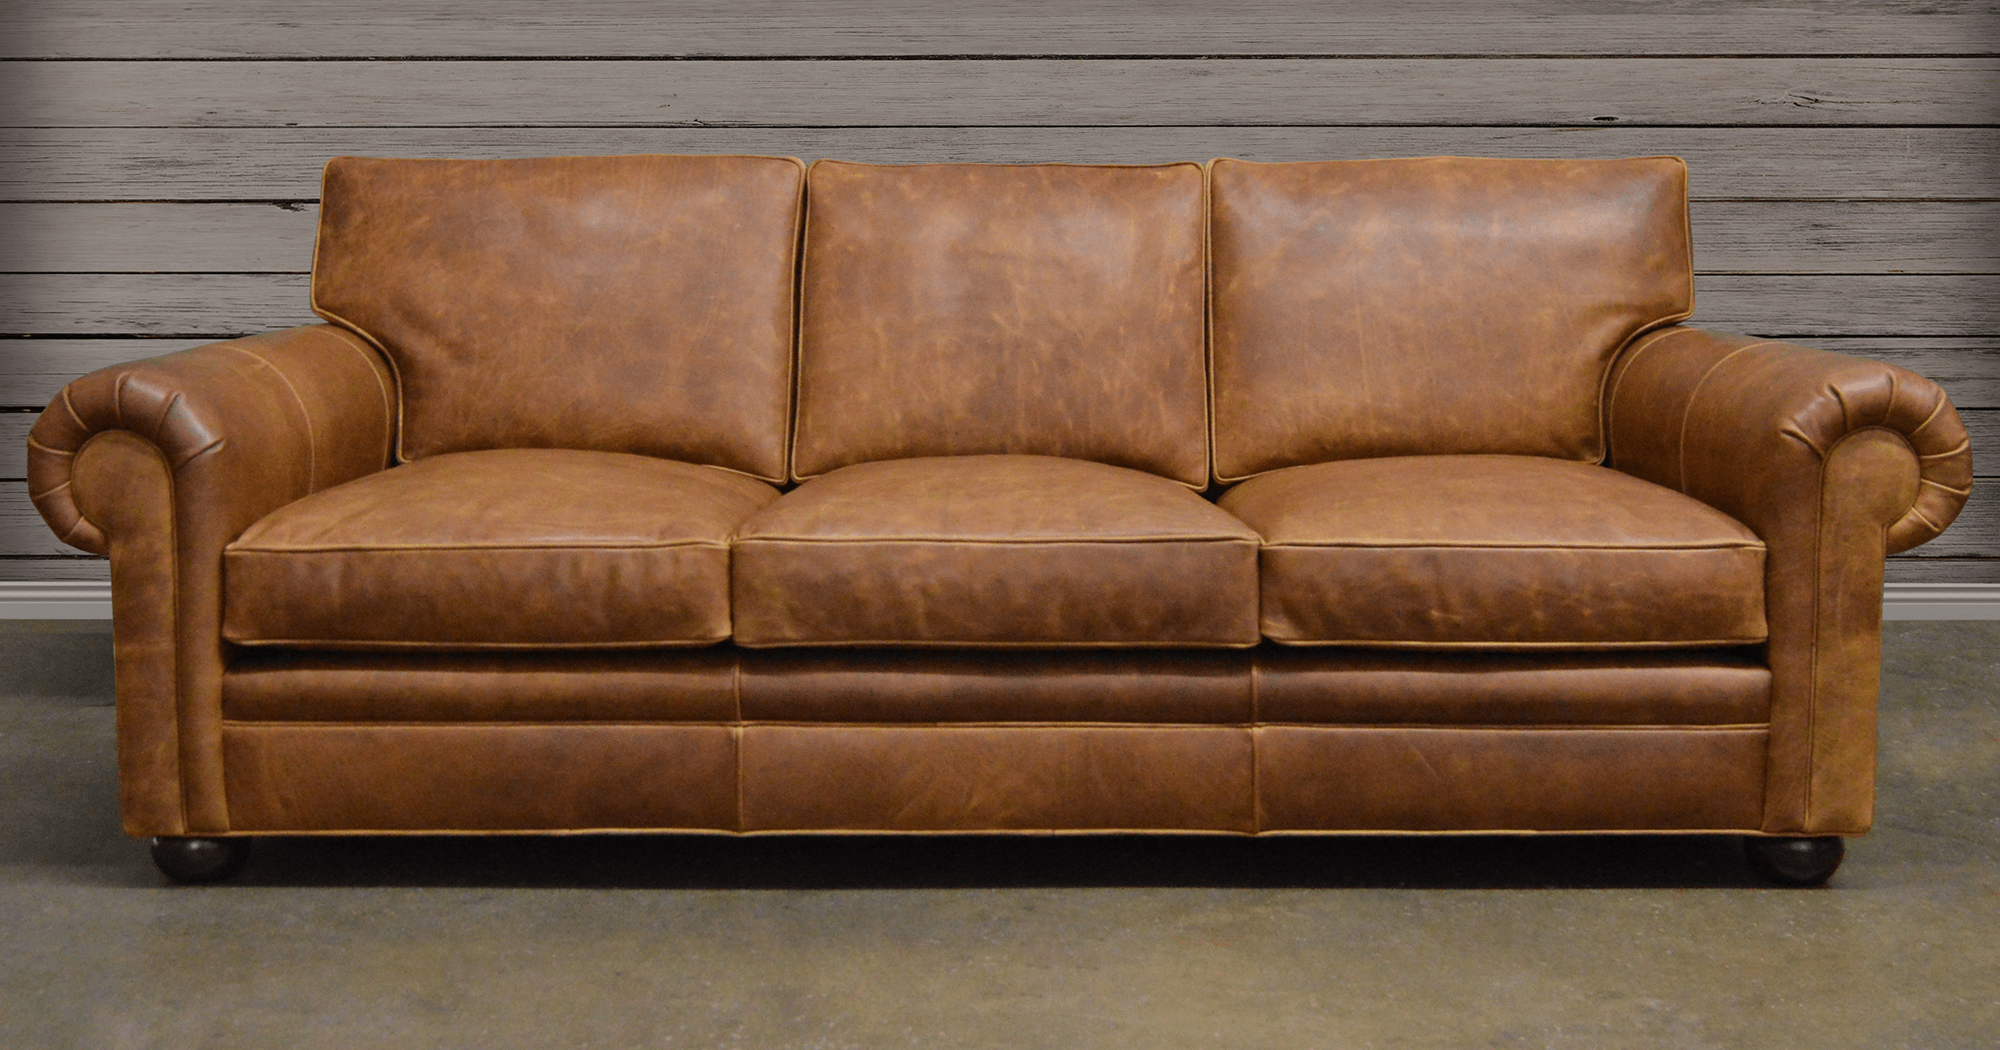 Italian Sofa Chairs American Made Leather Furniture Leather Sofas Leather